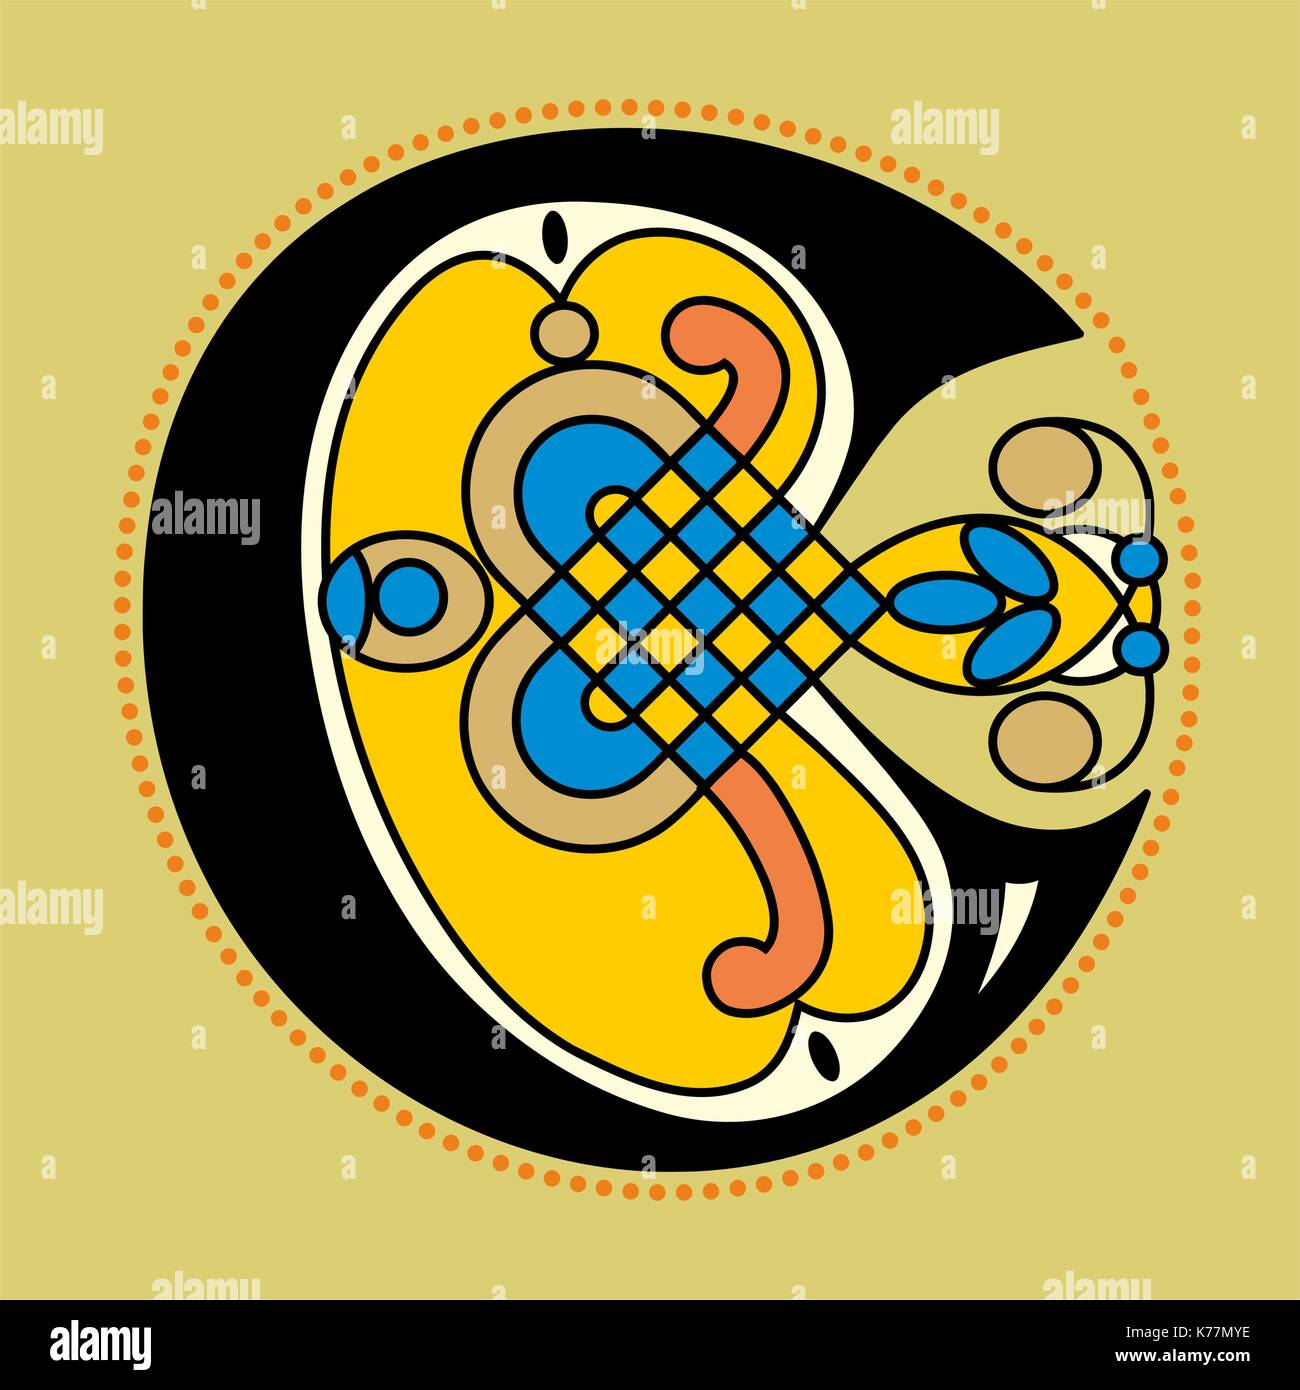 Decorative Ornamental Initial Letter C In Celtic Style Geometrical Form Like An Illustration Antique Medieval Illuminated Manuscript